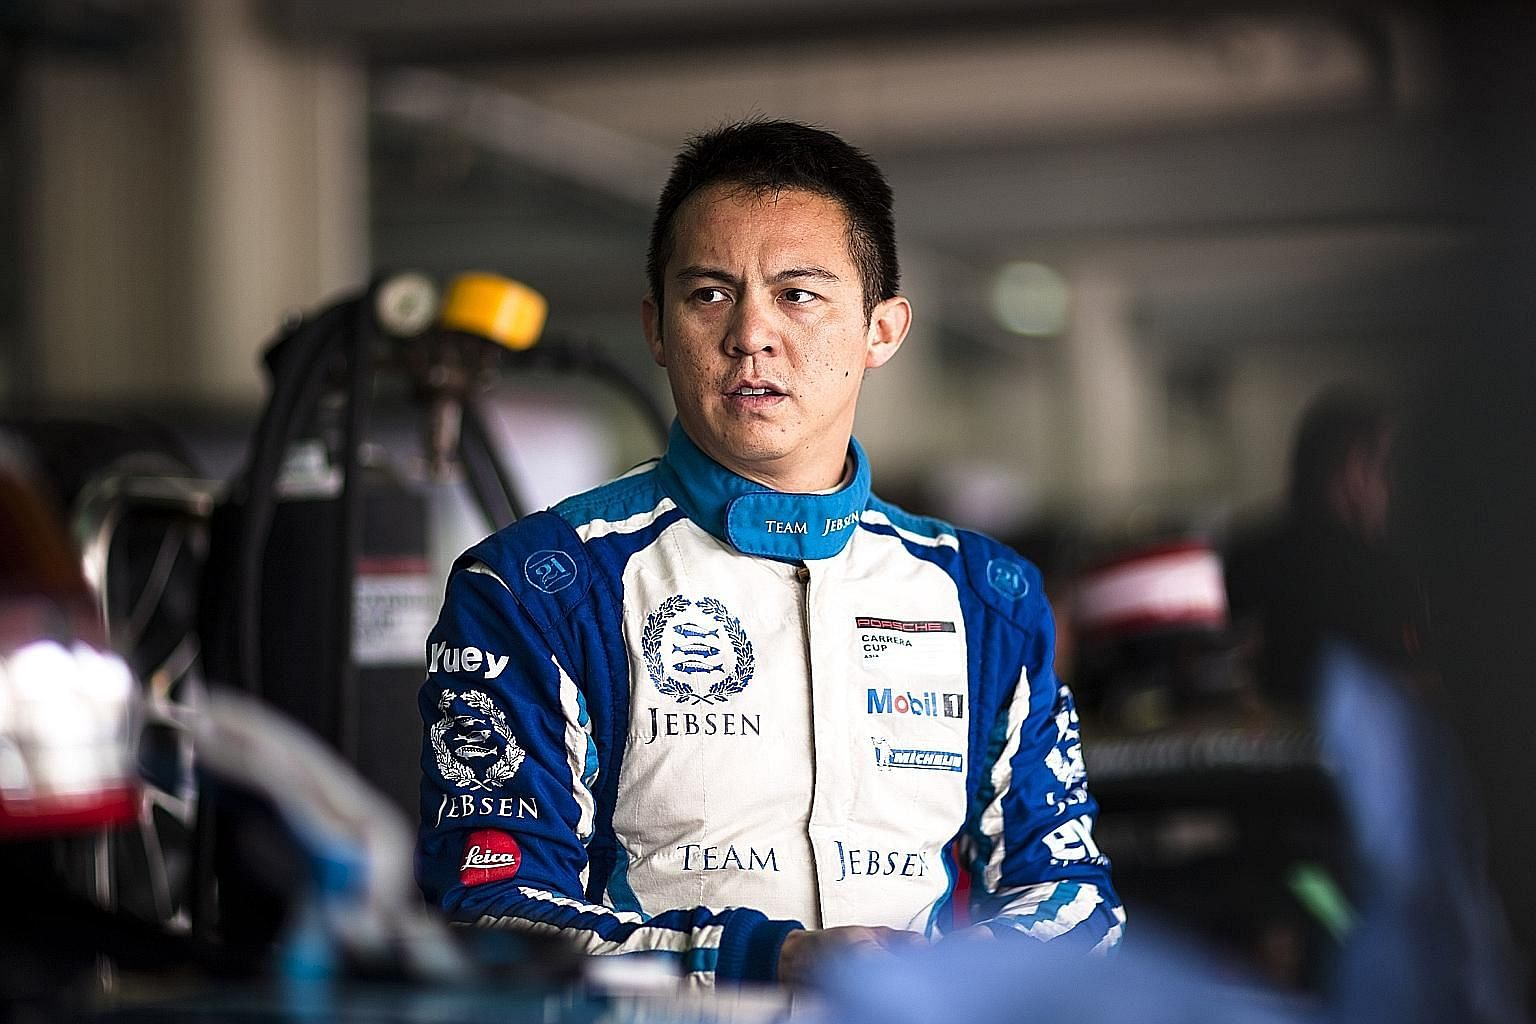 Yuey Tan ended the last two Class B seasons in second place, but now leads the standings with just four races remaining.